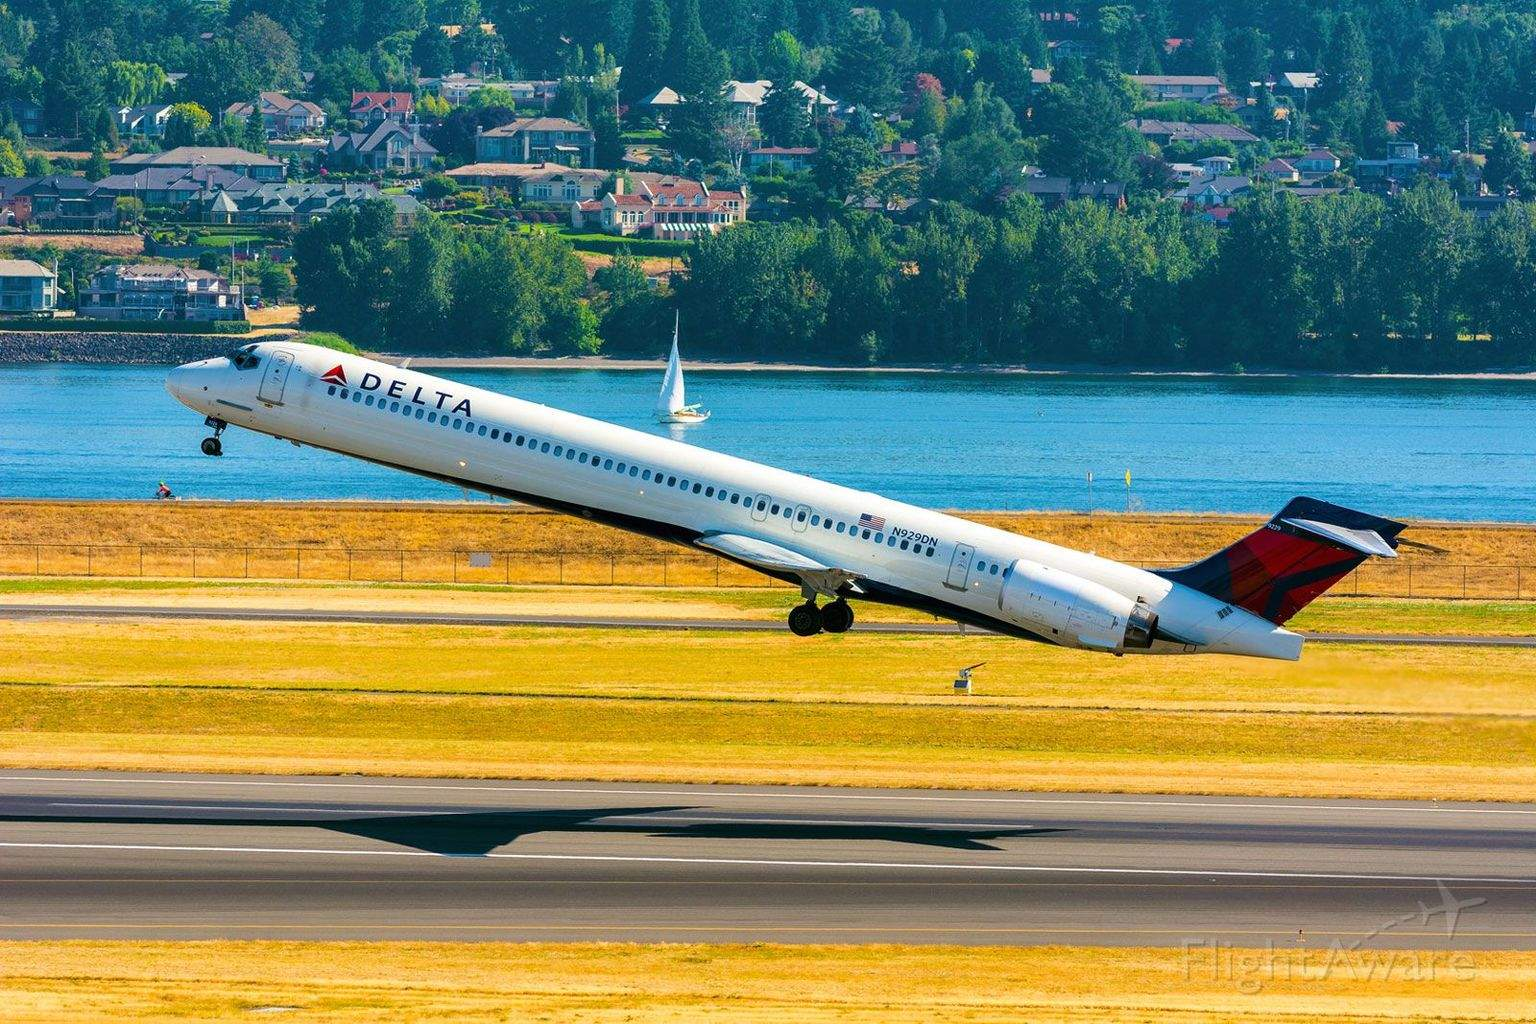 Passenger get life time ban on Delta Air Lines because of political outburst